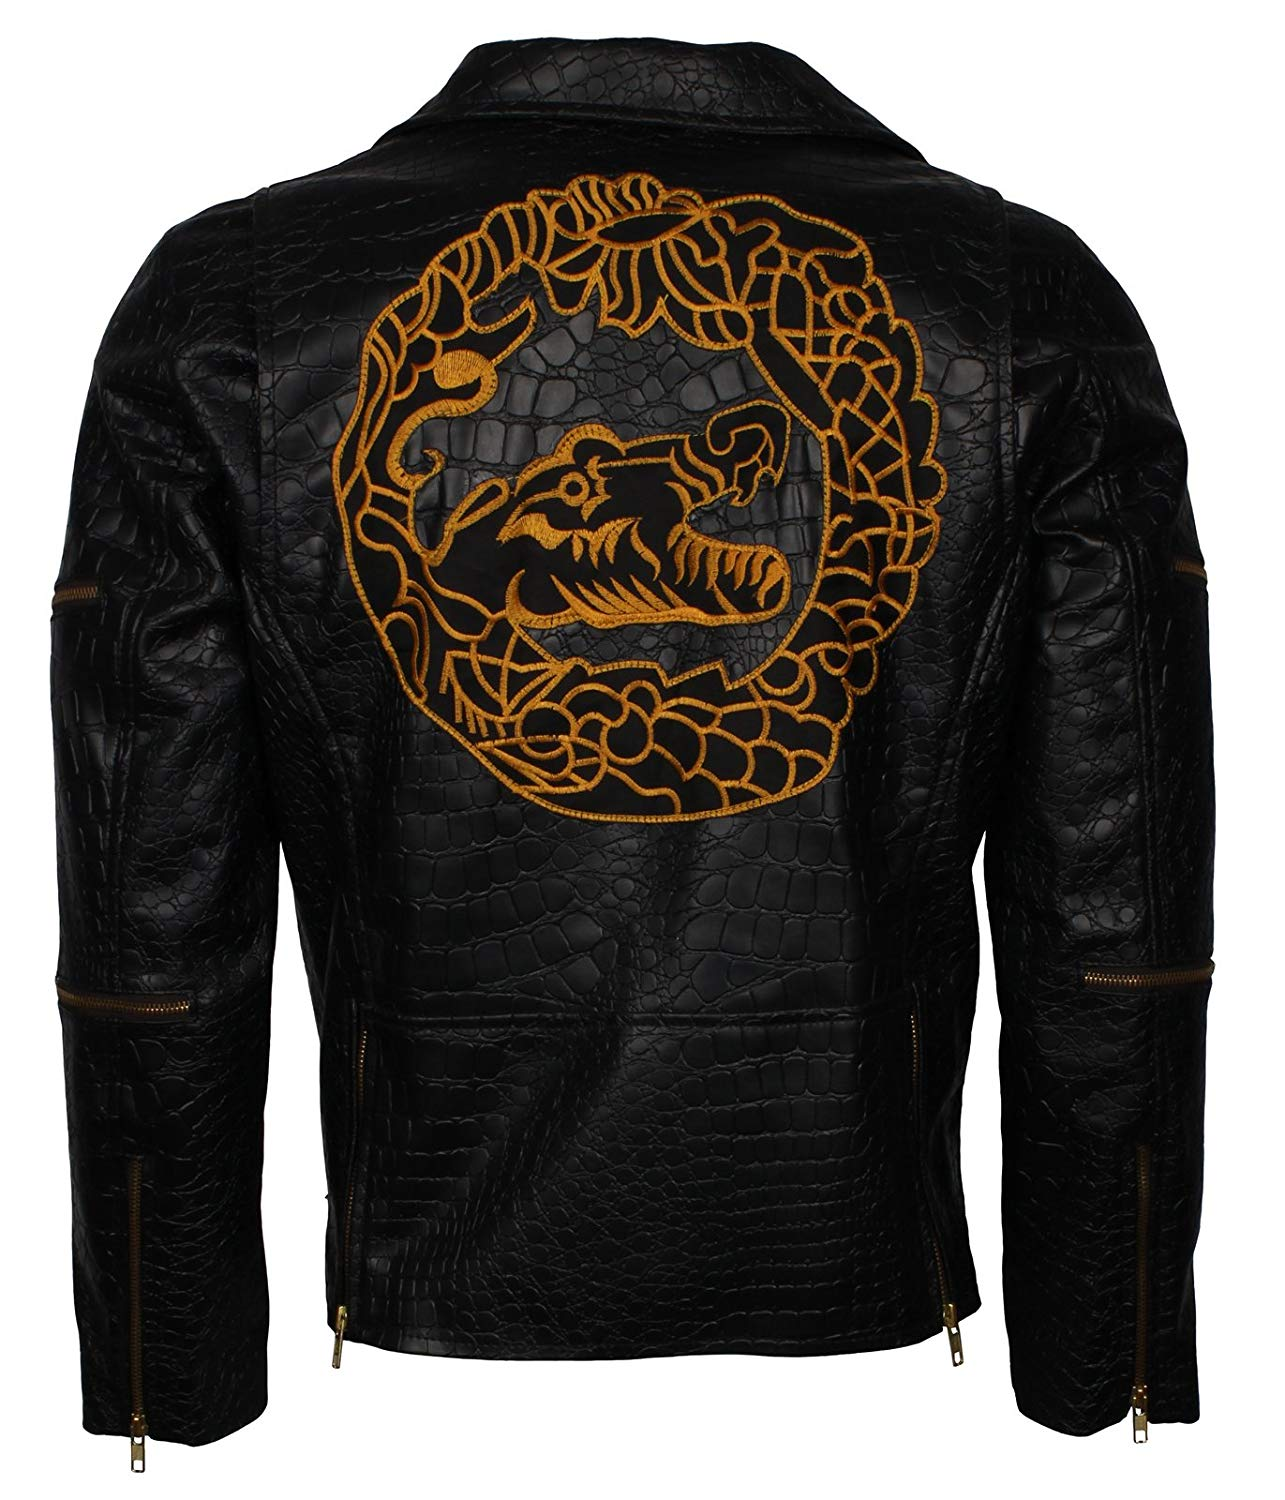 Herts Leather Mens Party Wear Biker Style Real Leather Jacket In Black Crocodile Skin Design